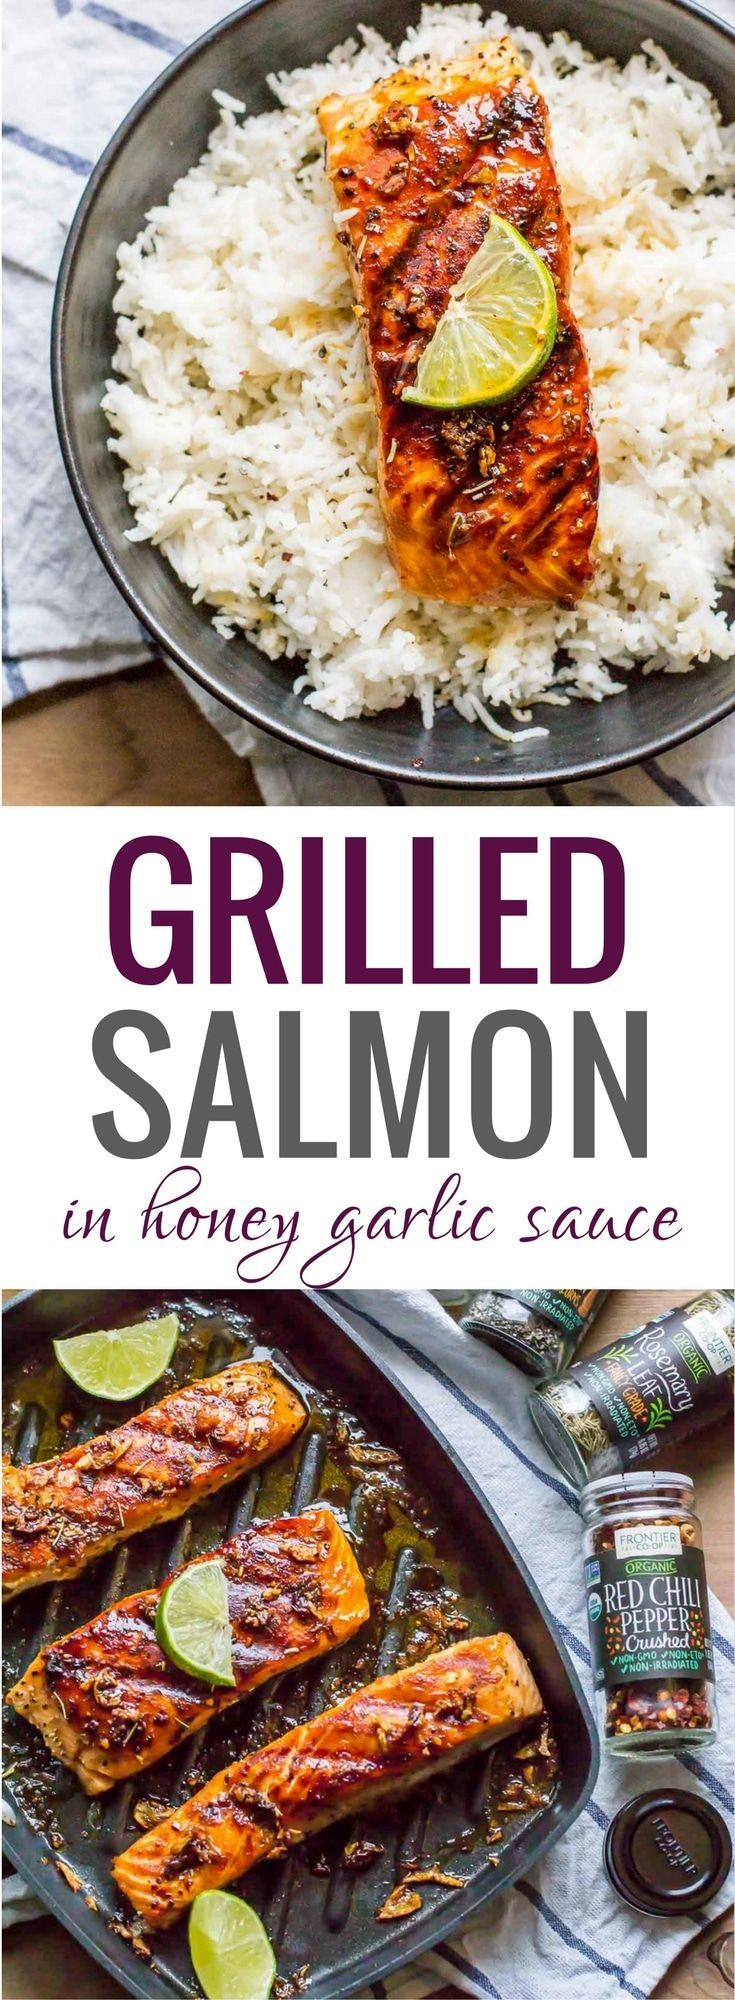 This easy 15-minute grilled honey garlic salmon is perfect for days when you crave a fancy meal but don't want to pay for it or spend hours making it. It is so finger-licking good that you'll imagine you are in an upscale restaurant enjoying a gourmet meal.